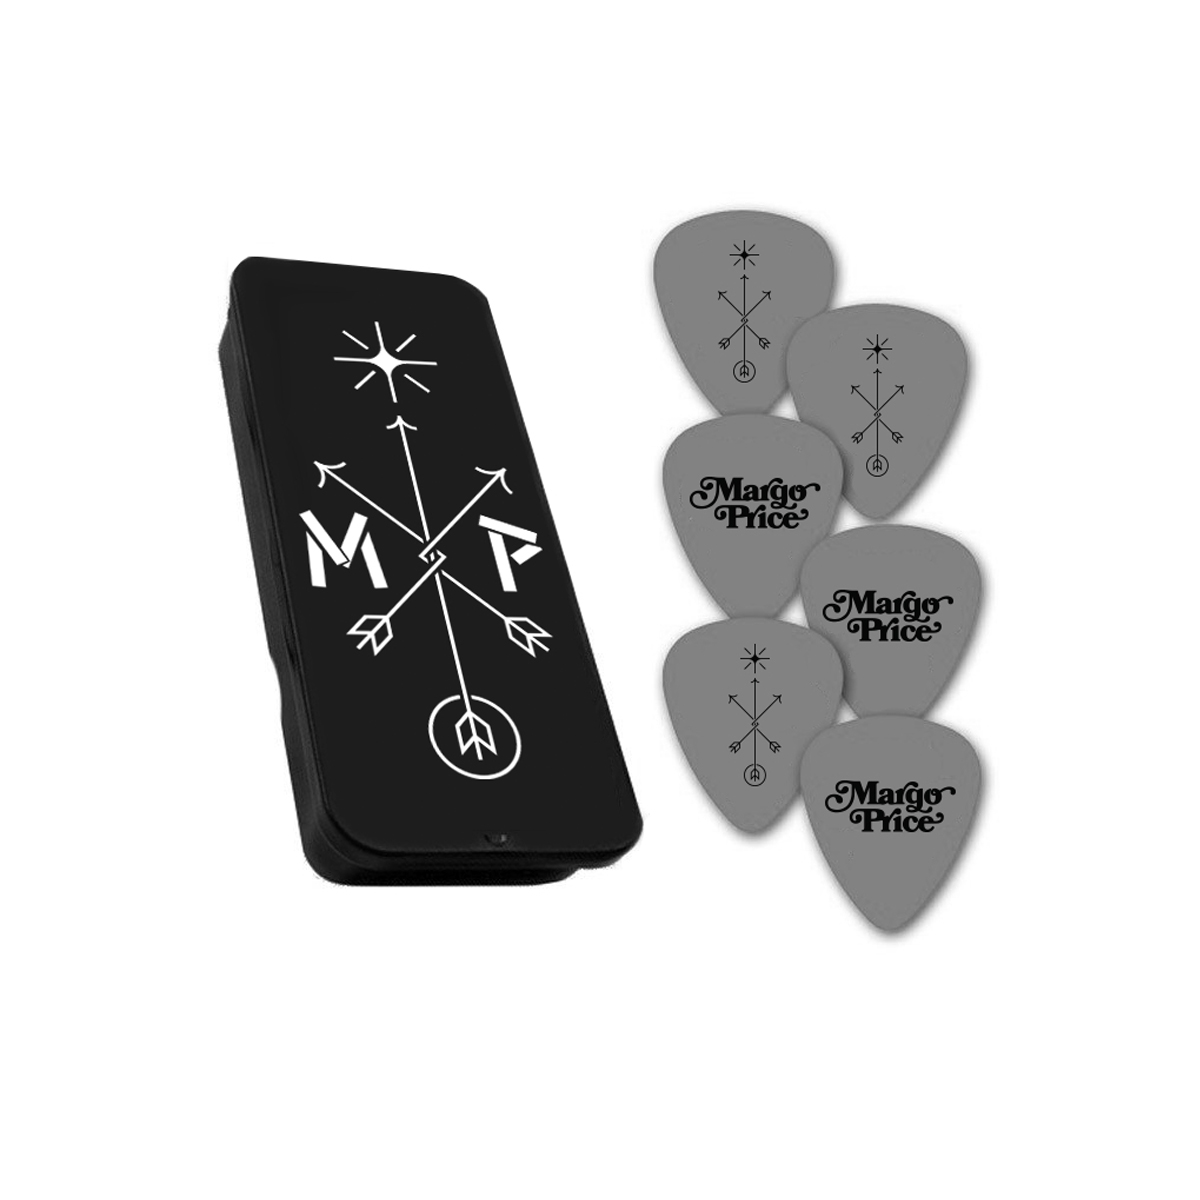 Margo Price Pick Tin